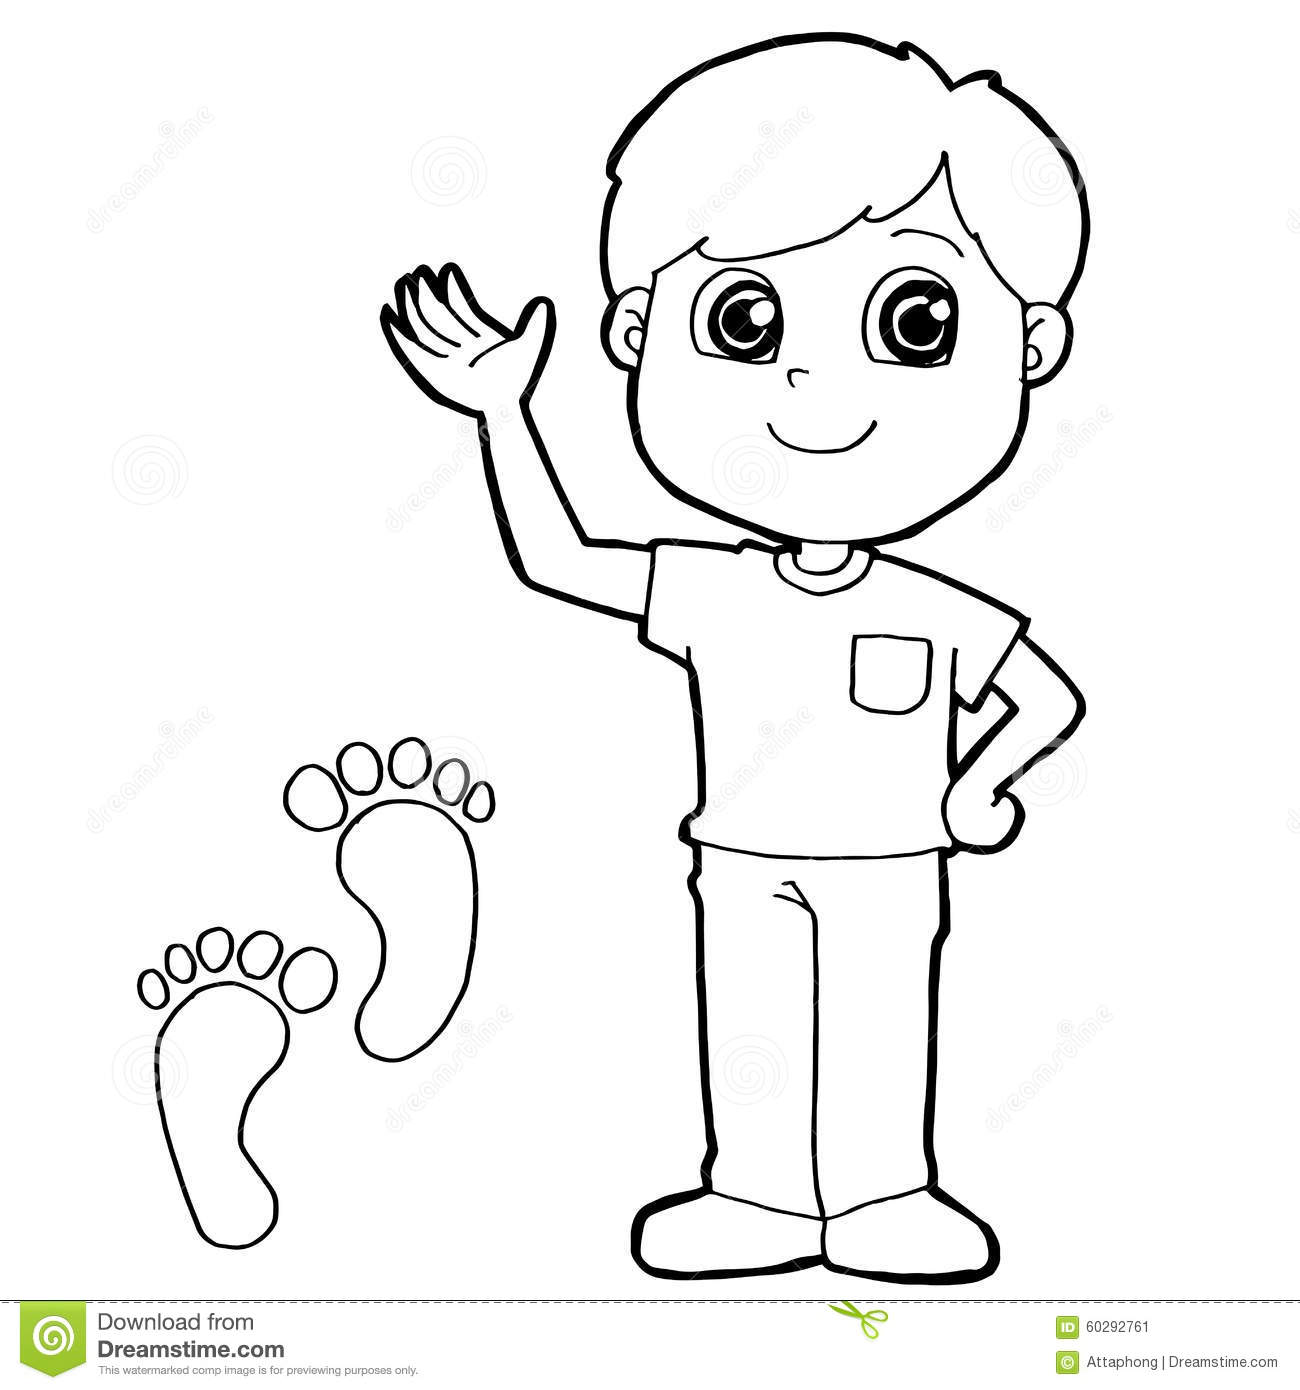 royalty free vector download kid with paw print